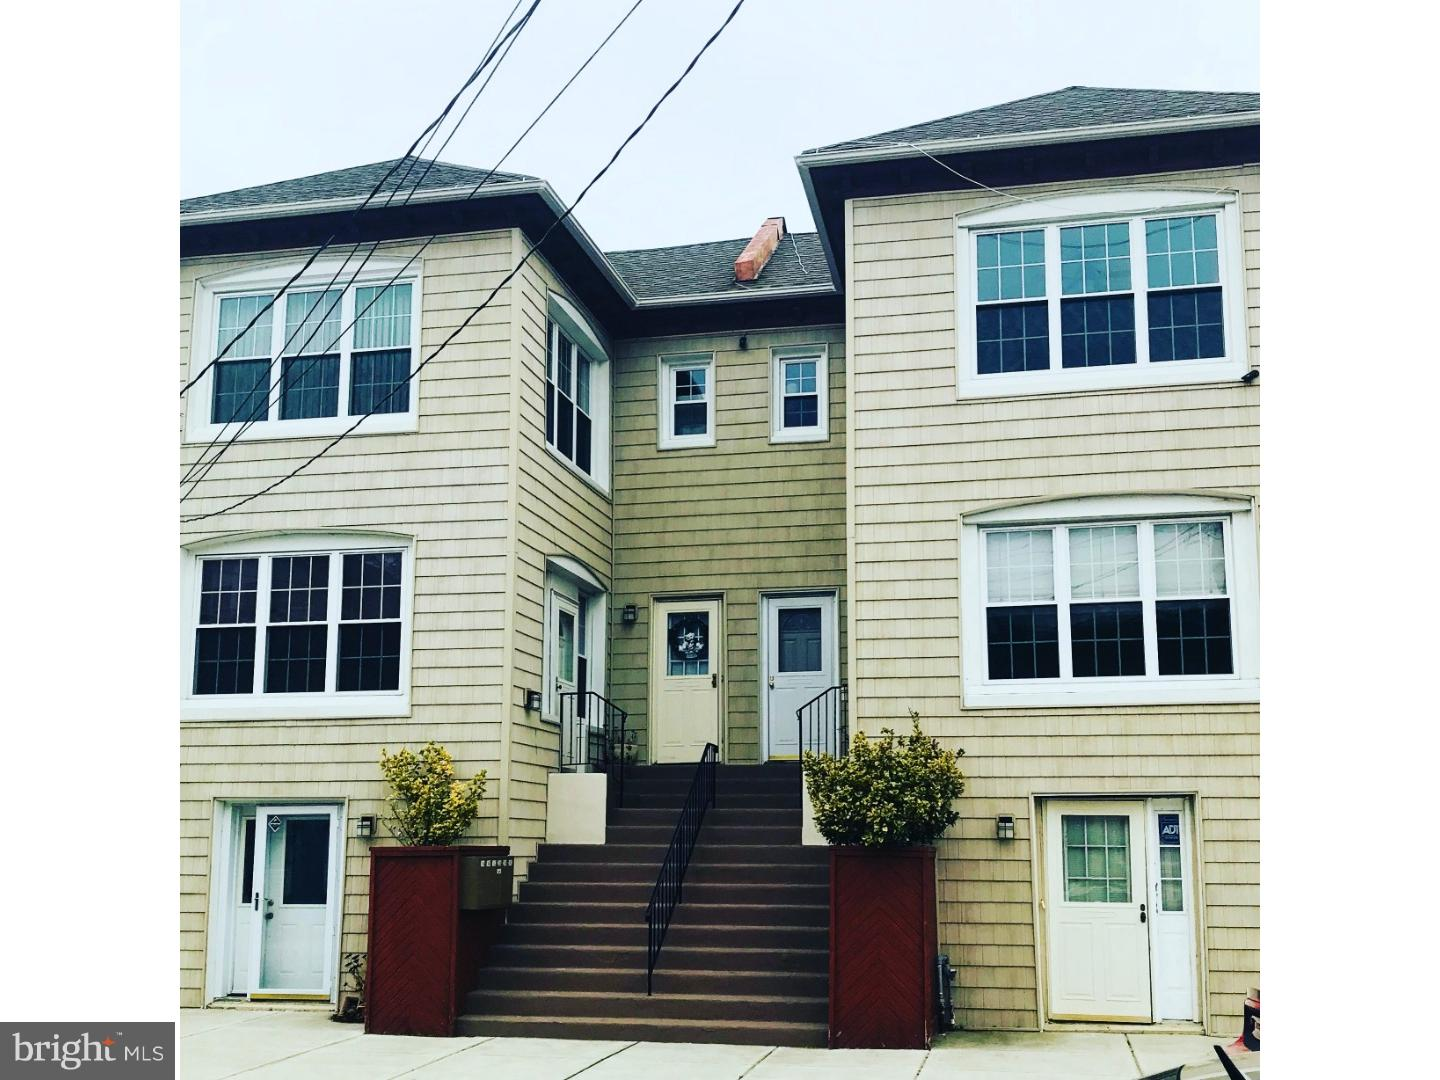 Single Family Home for Sale at 20 N NEWPORT AVE #B Ventnor City, New Jersey 08406 United States